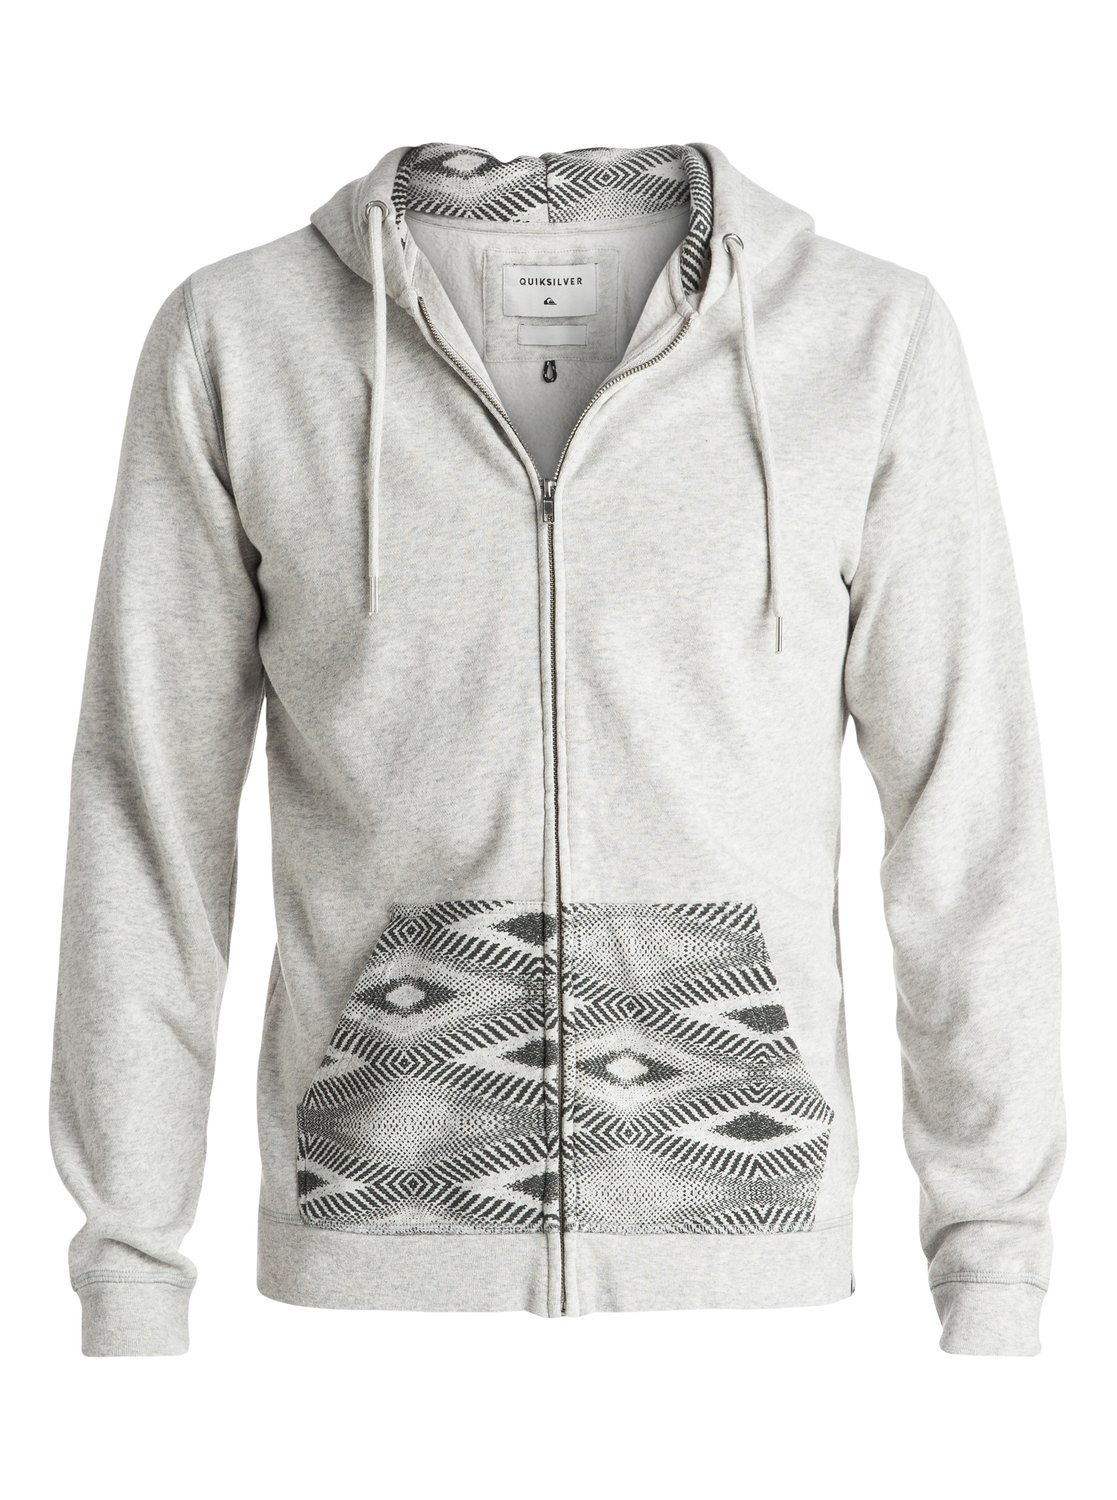 Decided Zippé Quiksilver Eqyft03475 4 Sweat Gris À Capuche Fate dwqwpgxX8